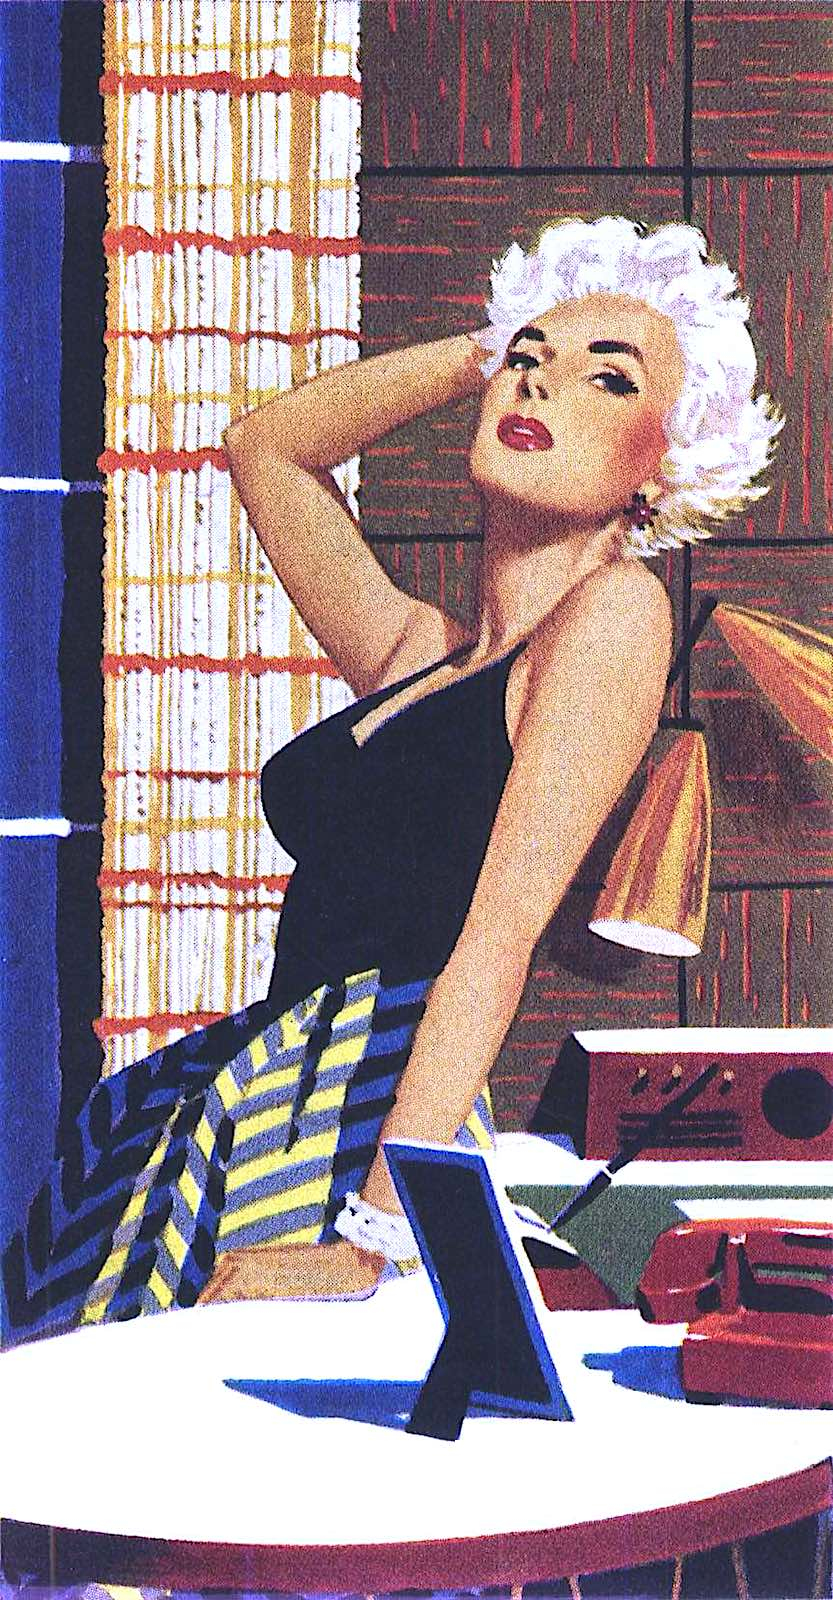 a James R. Bingham illustration of an alluring attractive woman in a modern home